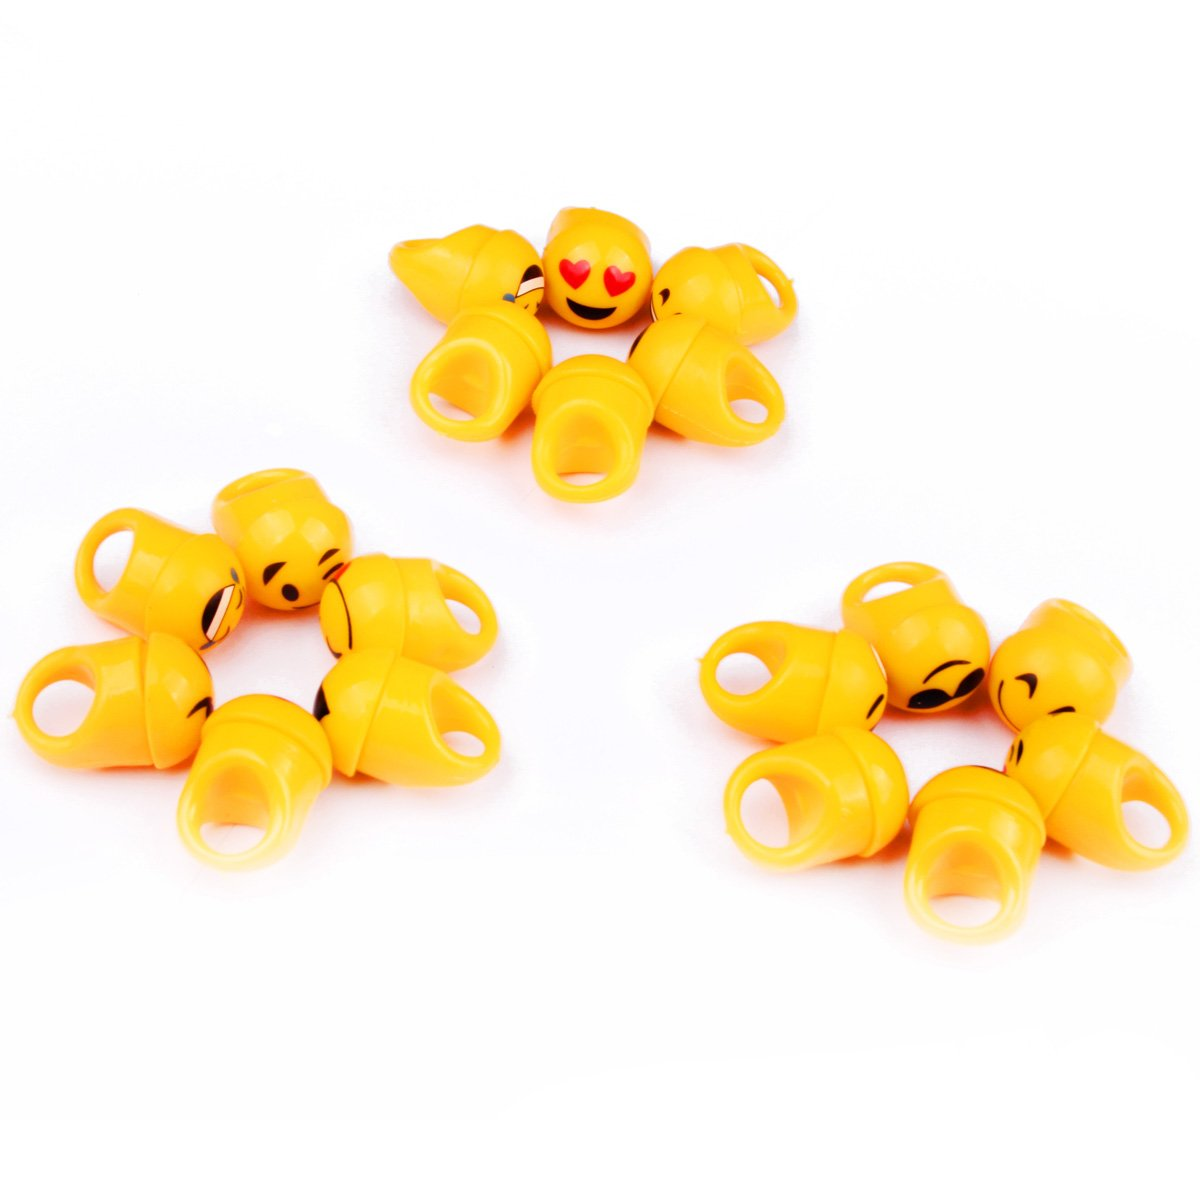 Wiekose Hyuling 108ps Bright Flashing Emoji LED Rings, Flashing Colorful LED Light up Bumpy Jelly Rubber Rings Finger Toys for Parties